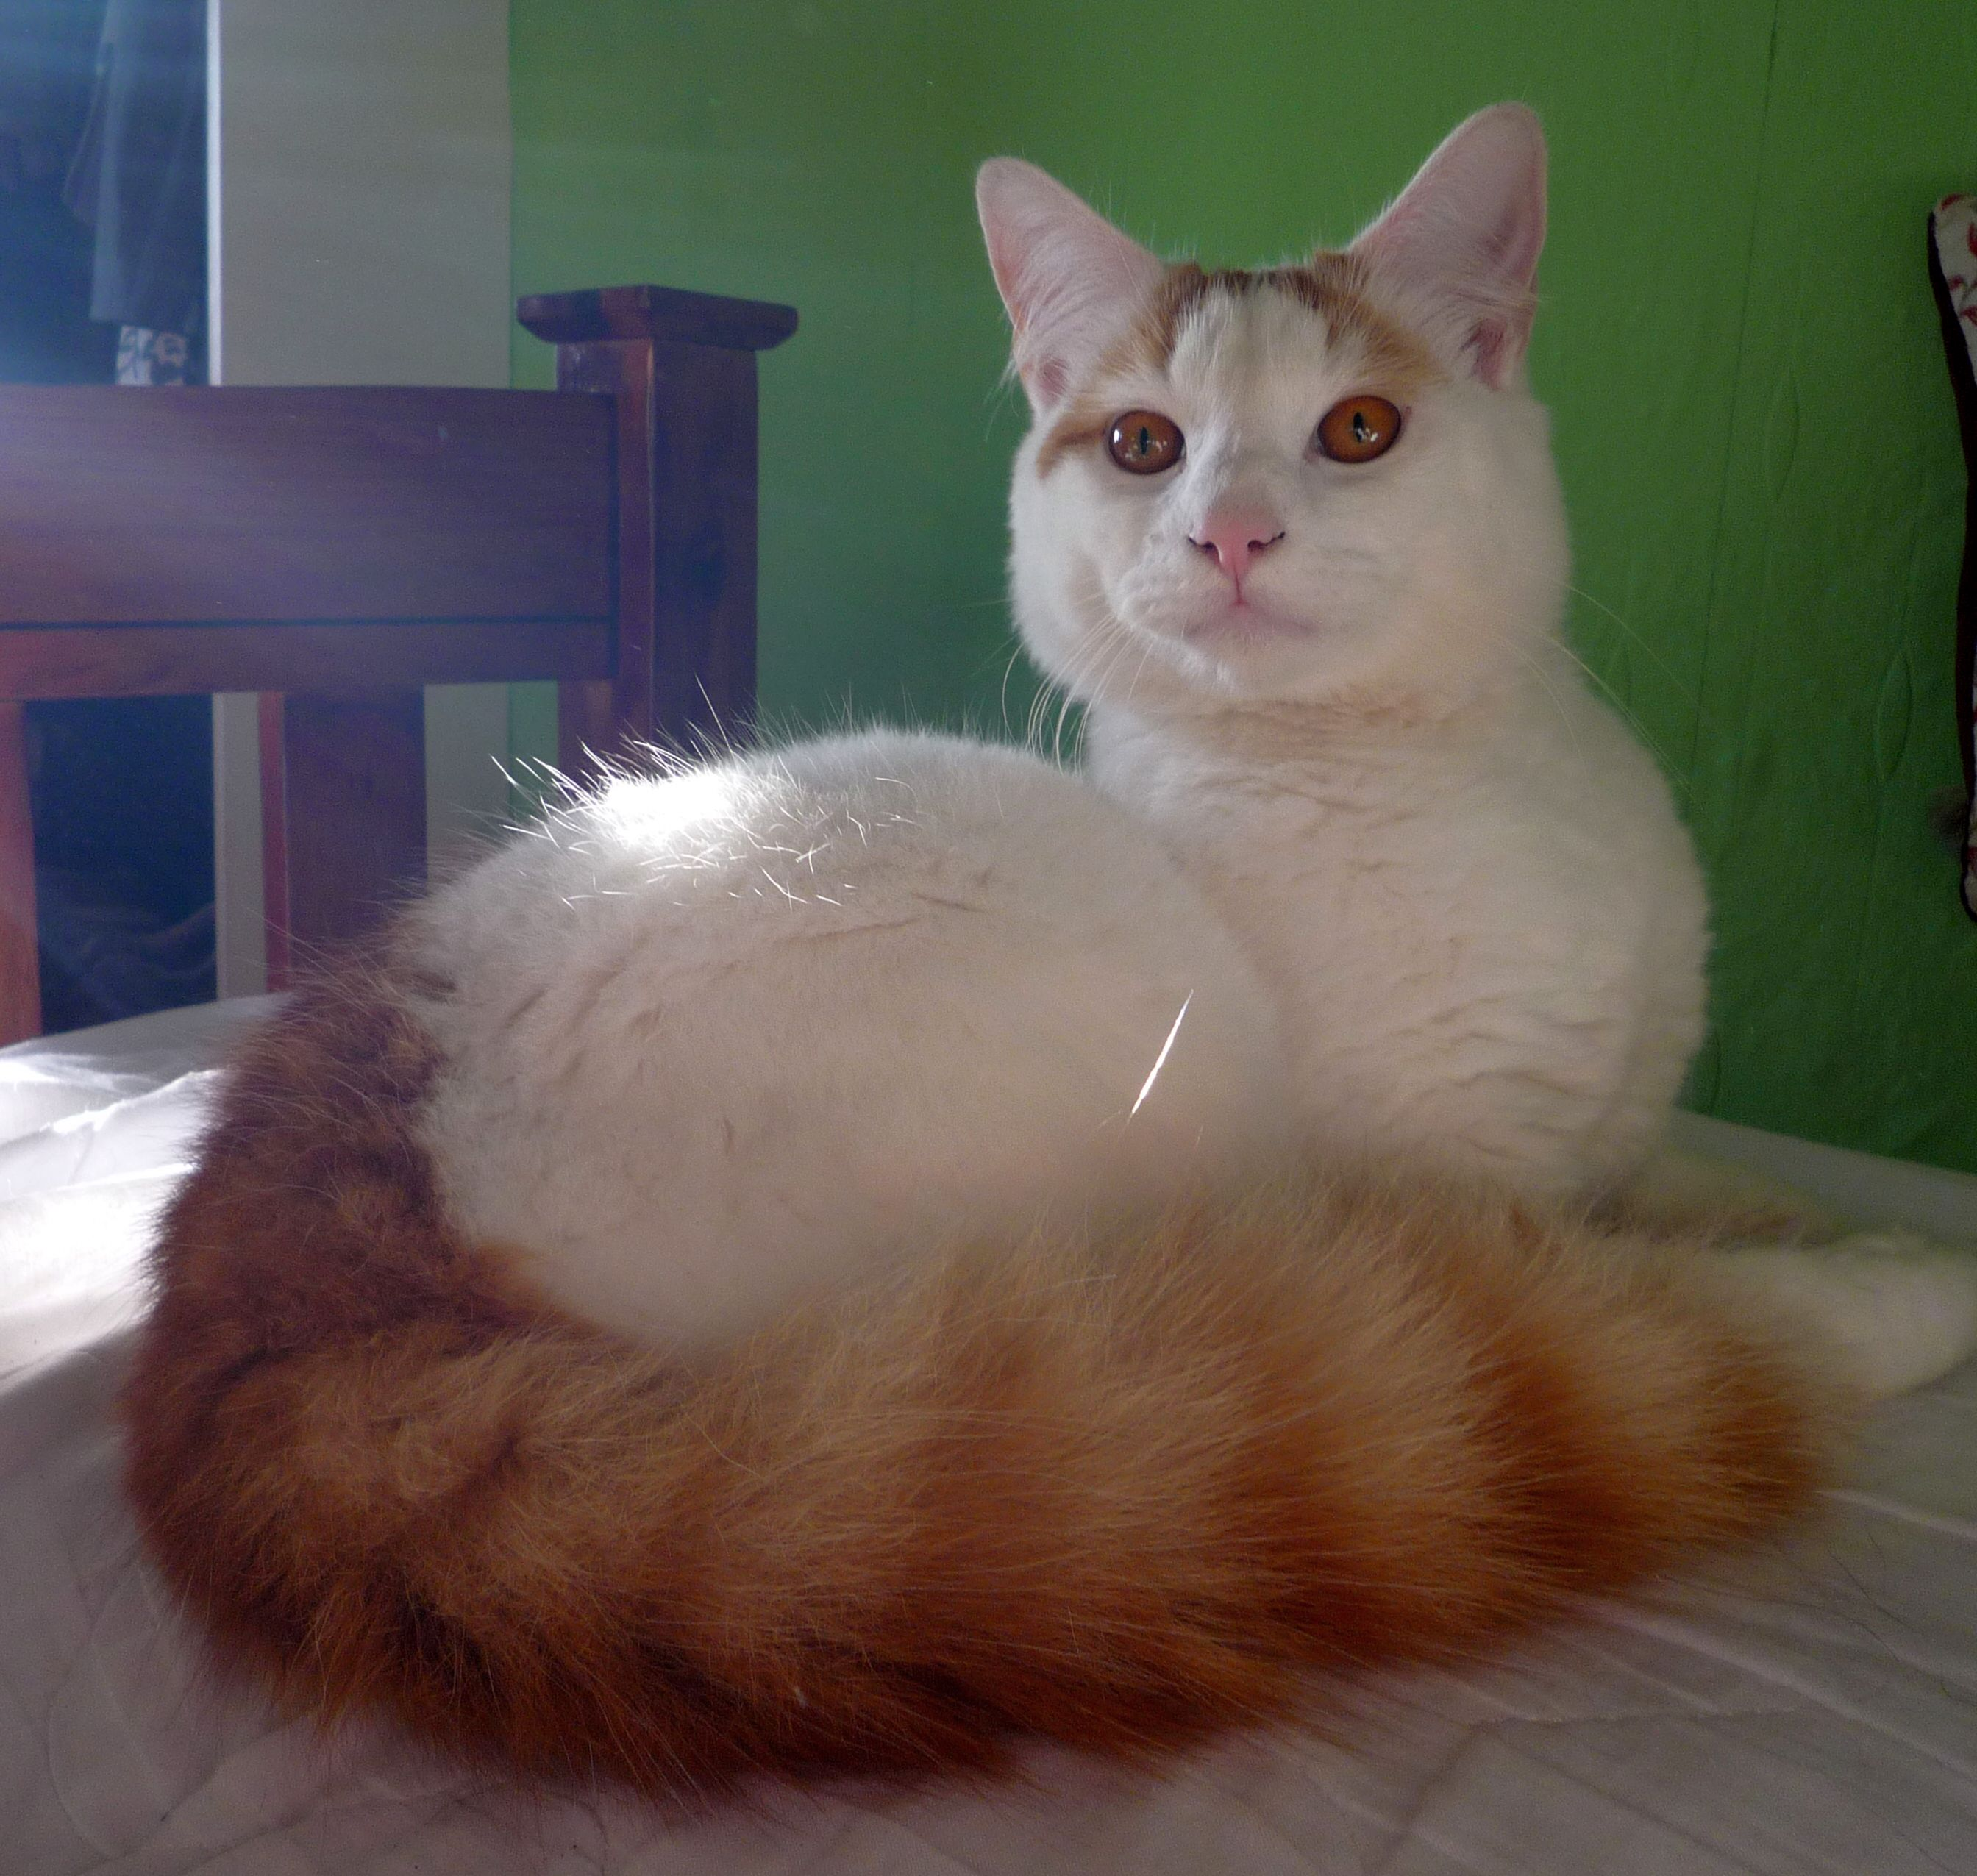 Cat Cat File Morris A Cat Of The Turkish Van Jpg Wikimedia Commons